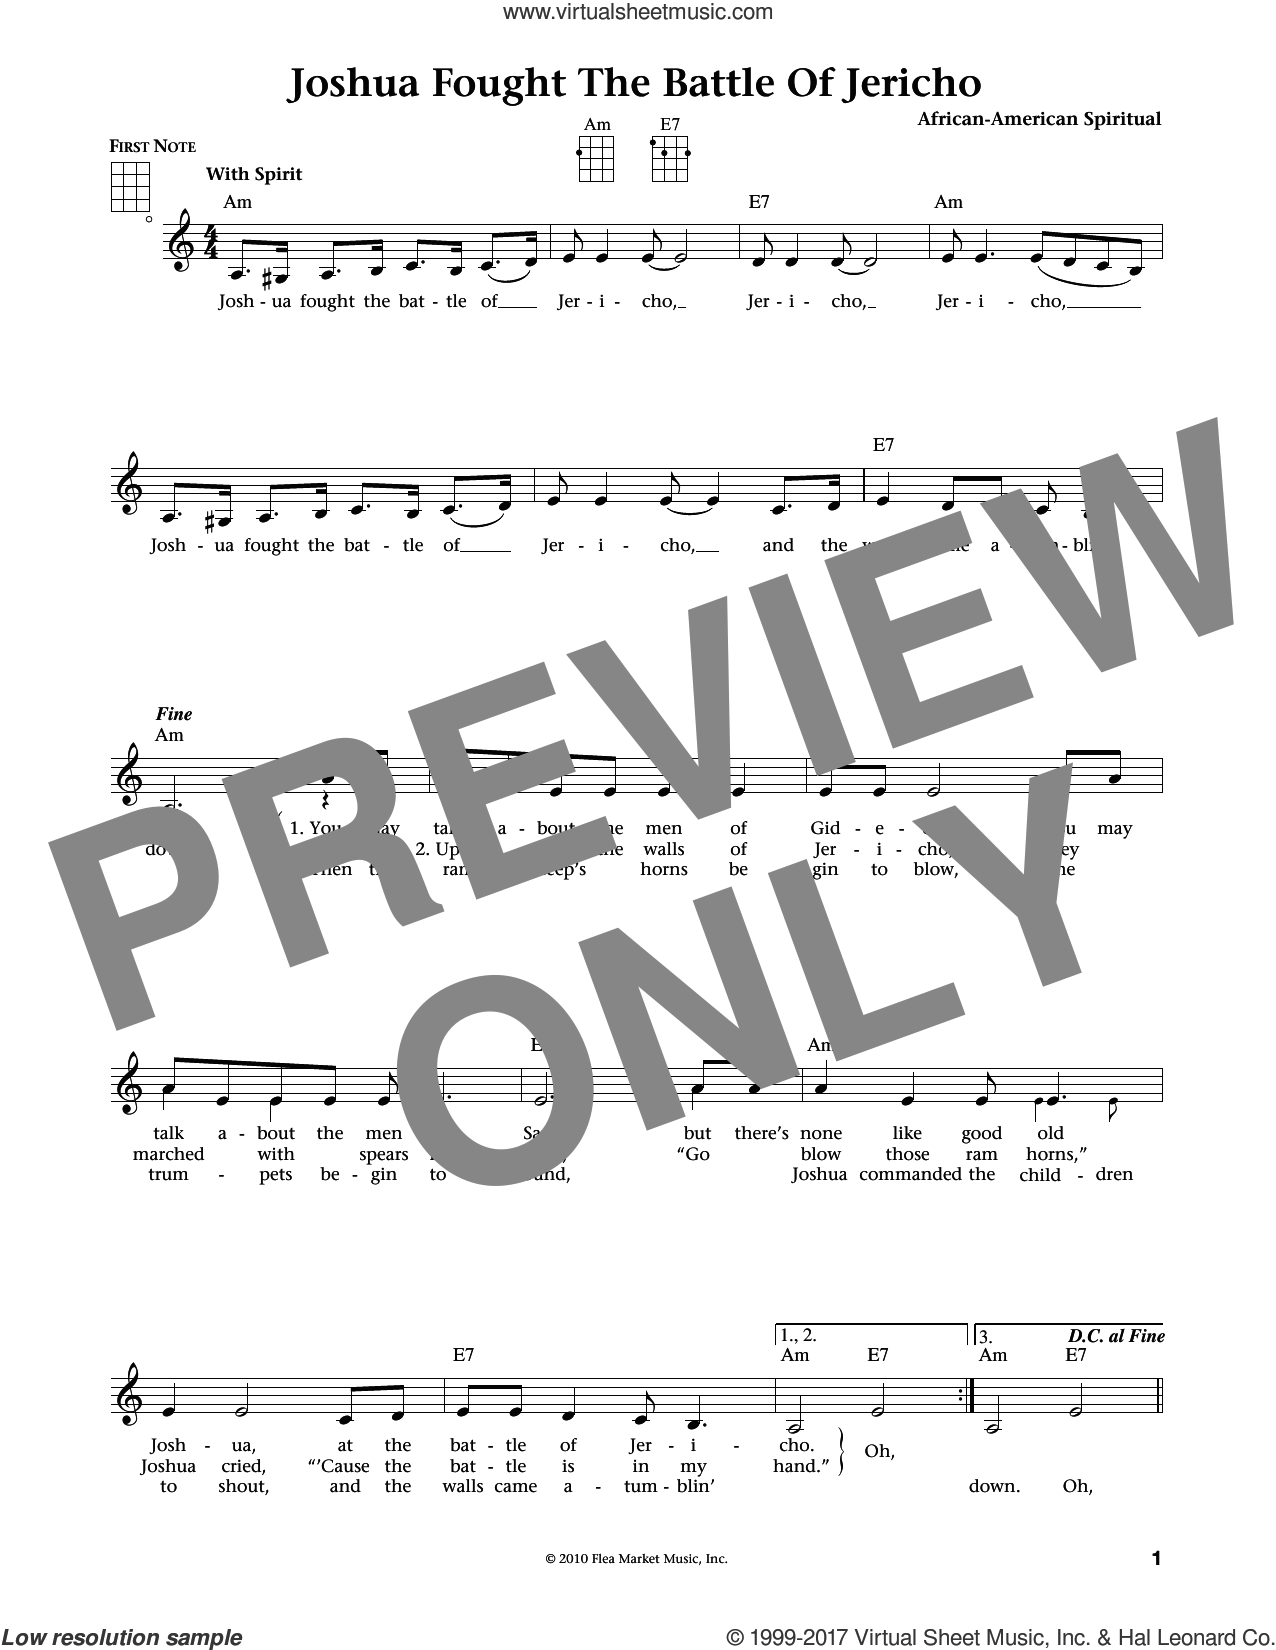 Joshua (Fit The Battle Of Jericho) sheet music for ukulele , Jim Beloff and Liz Beloff, intermediate skill level